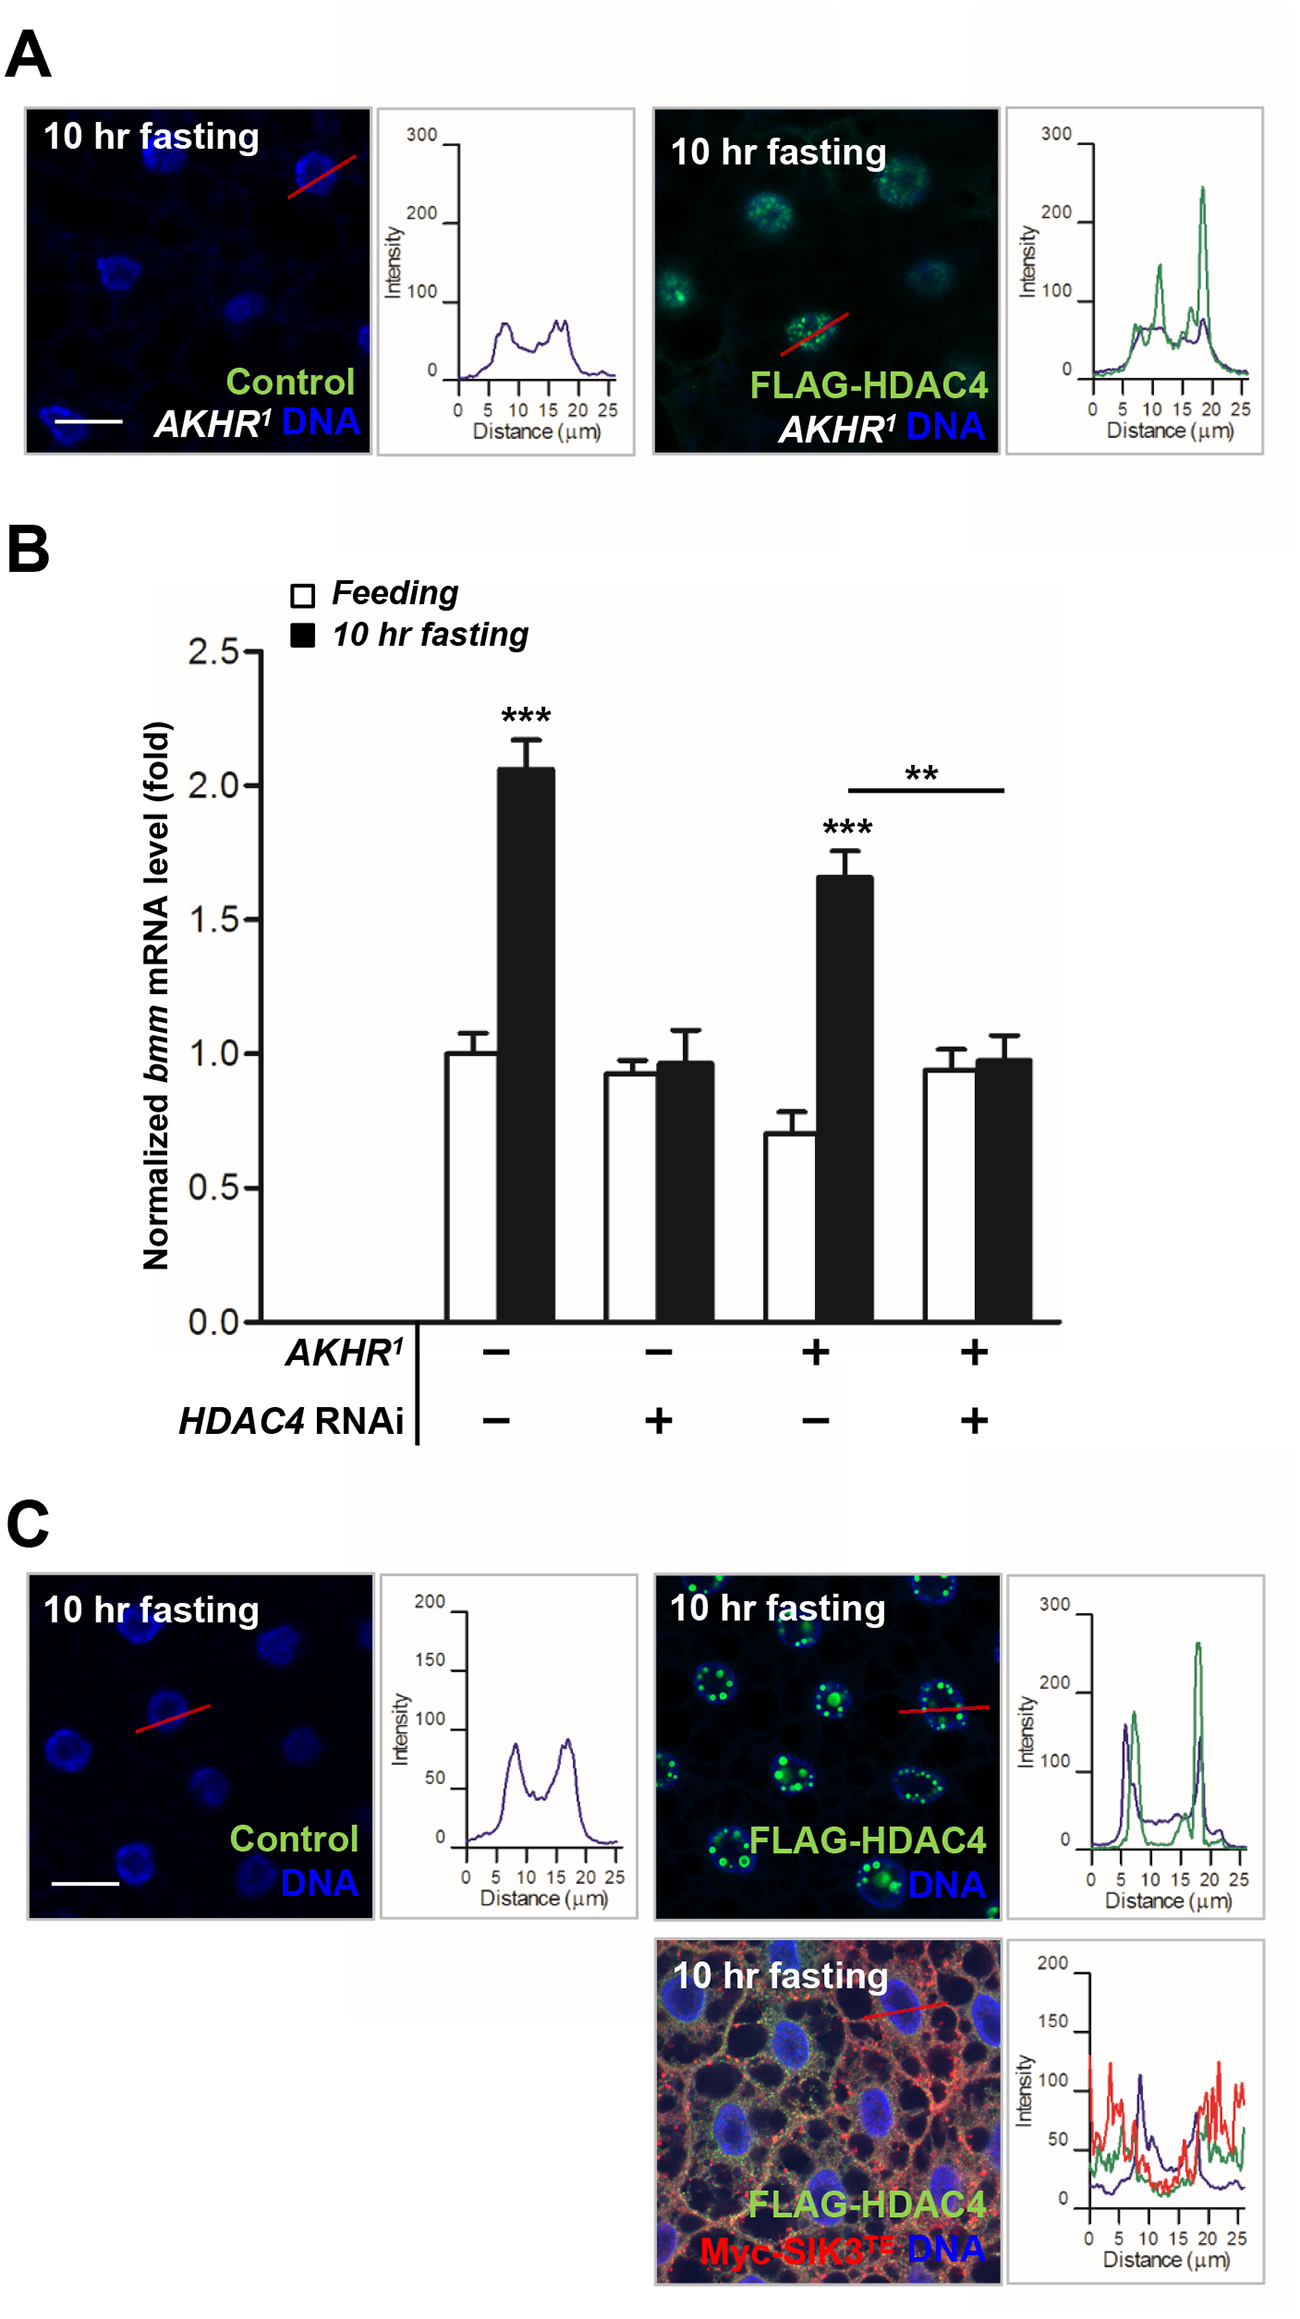 HDAC4 accumulated in the nuclei of the fat body cells in AKHR mutants under prolonged fasting.